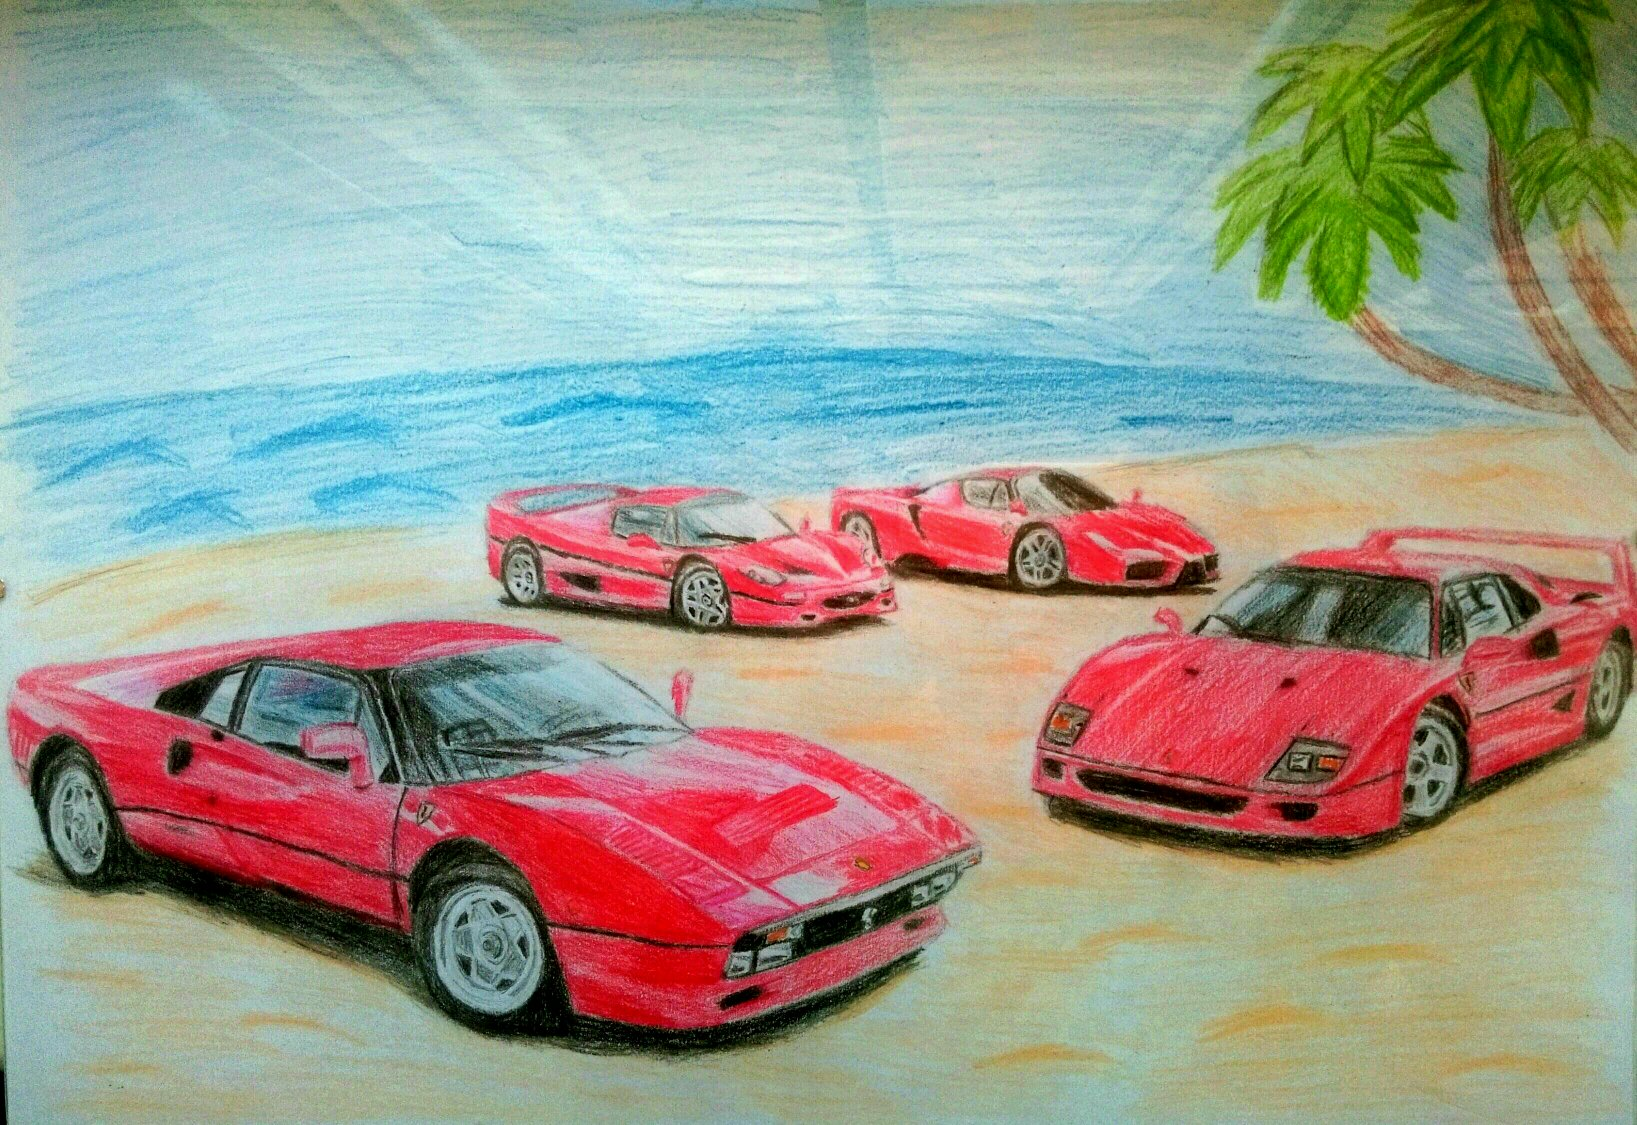 Pencil Drawing Of The Four Of Main Models From Ferrari The 288 Gto The F40 F50 And The Enzo